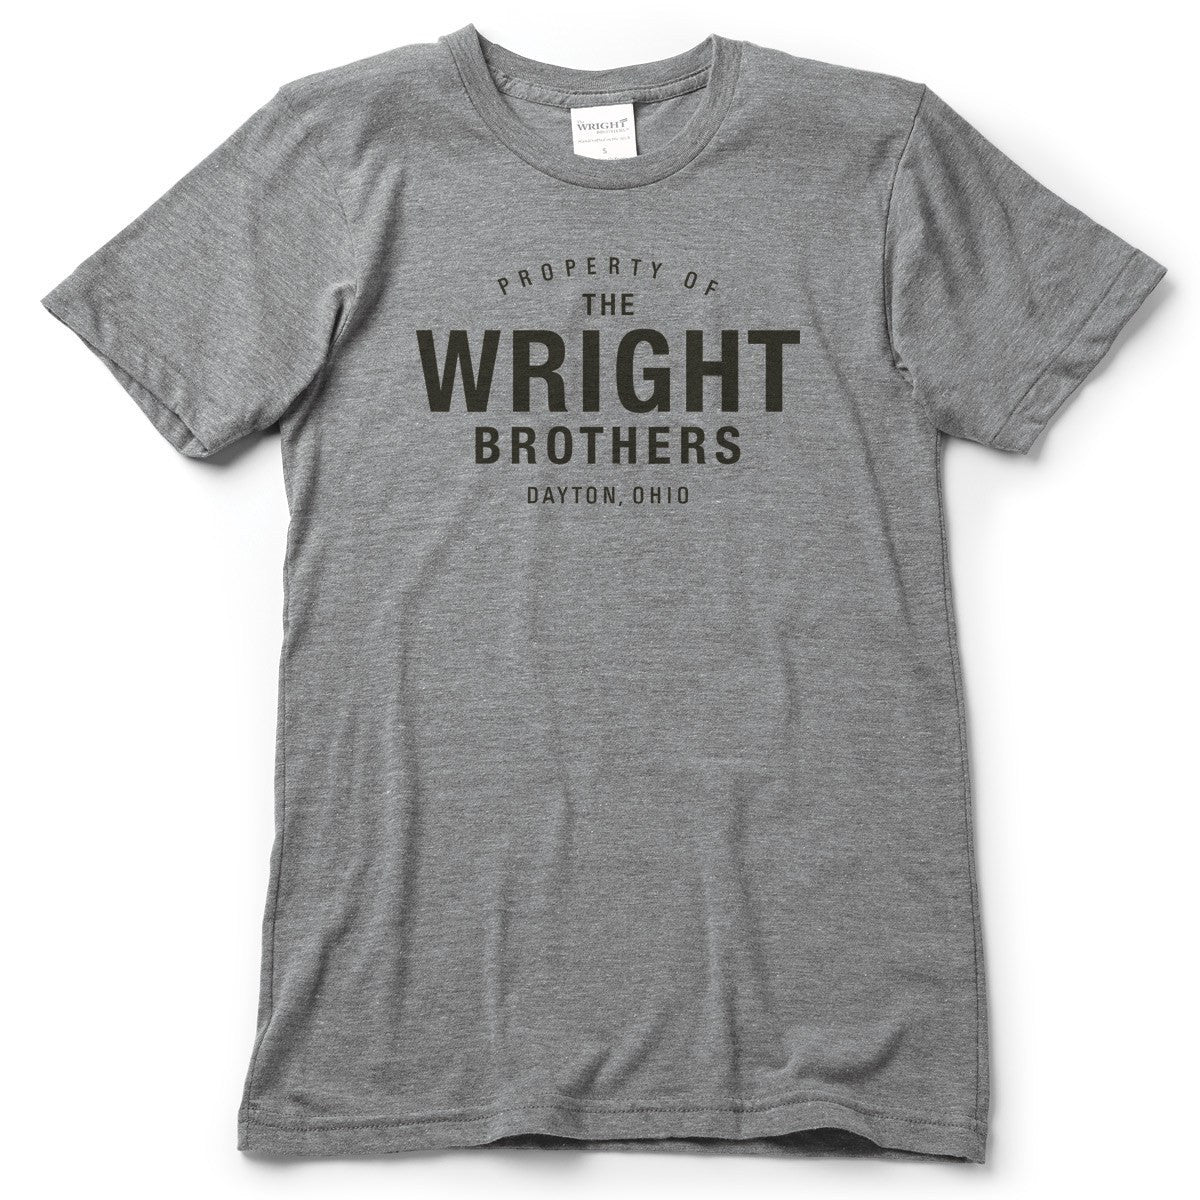 Property of the Wright Brothers T-Shirt - Celebrate Local, Shop The Best of Ohio